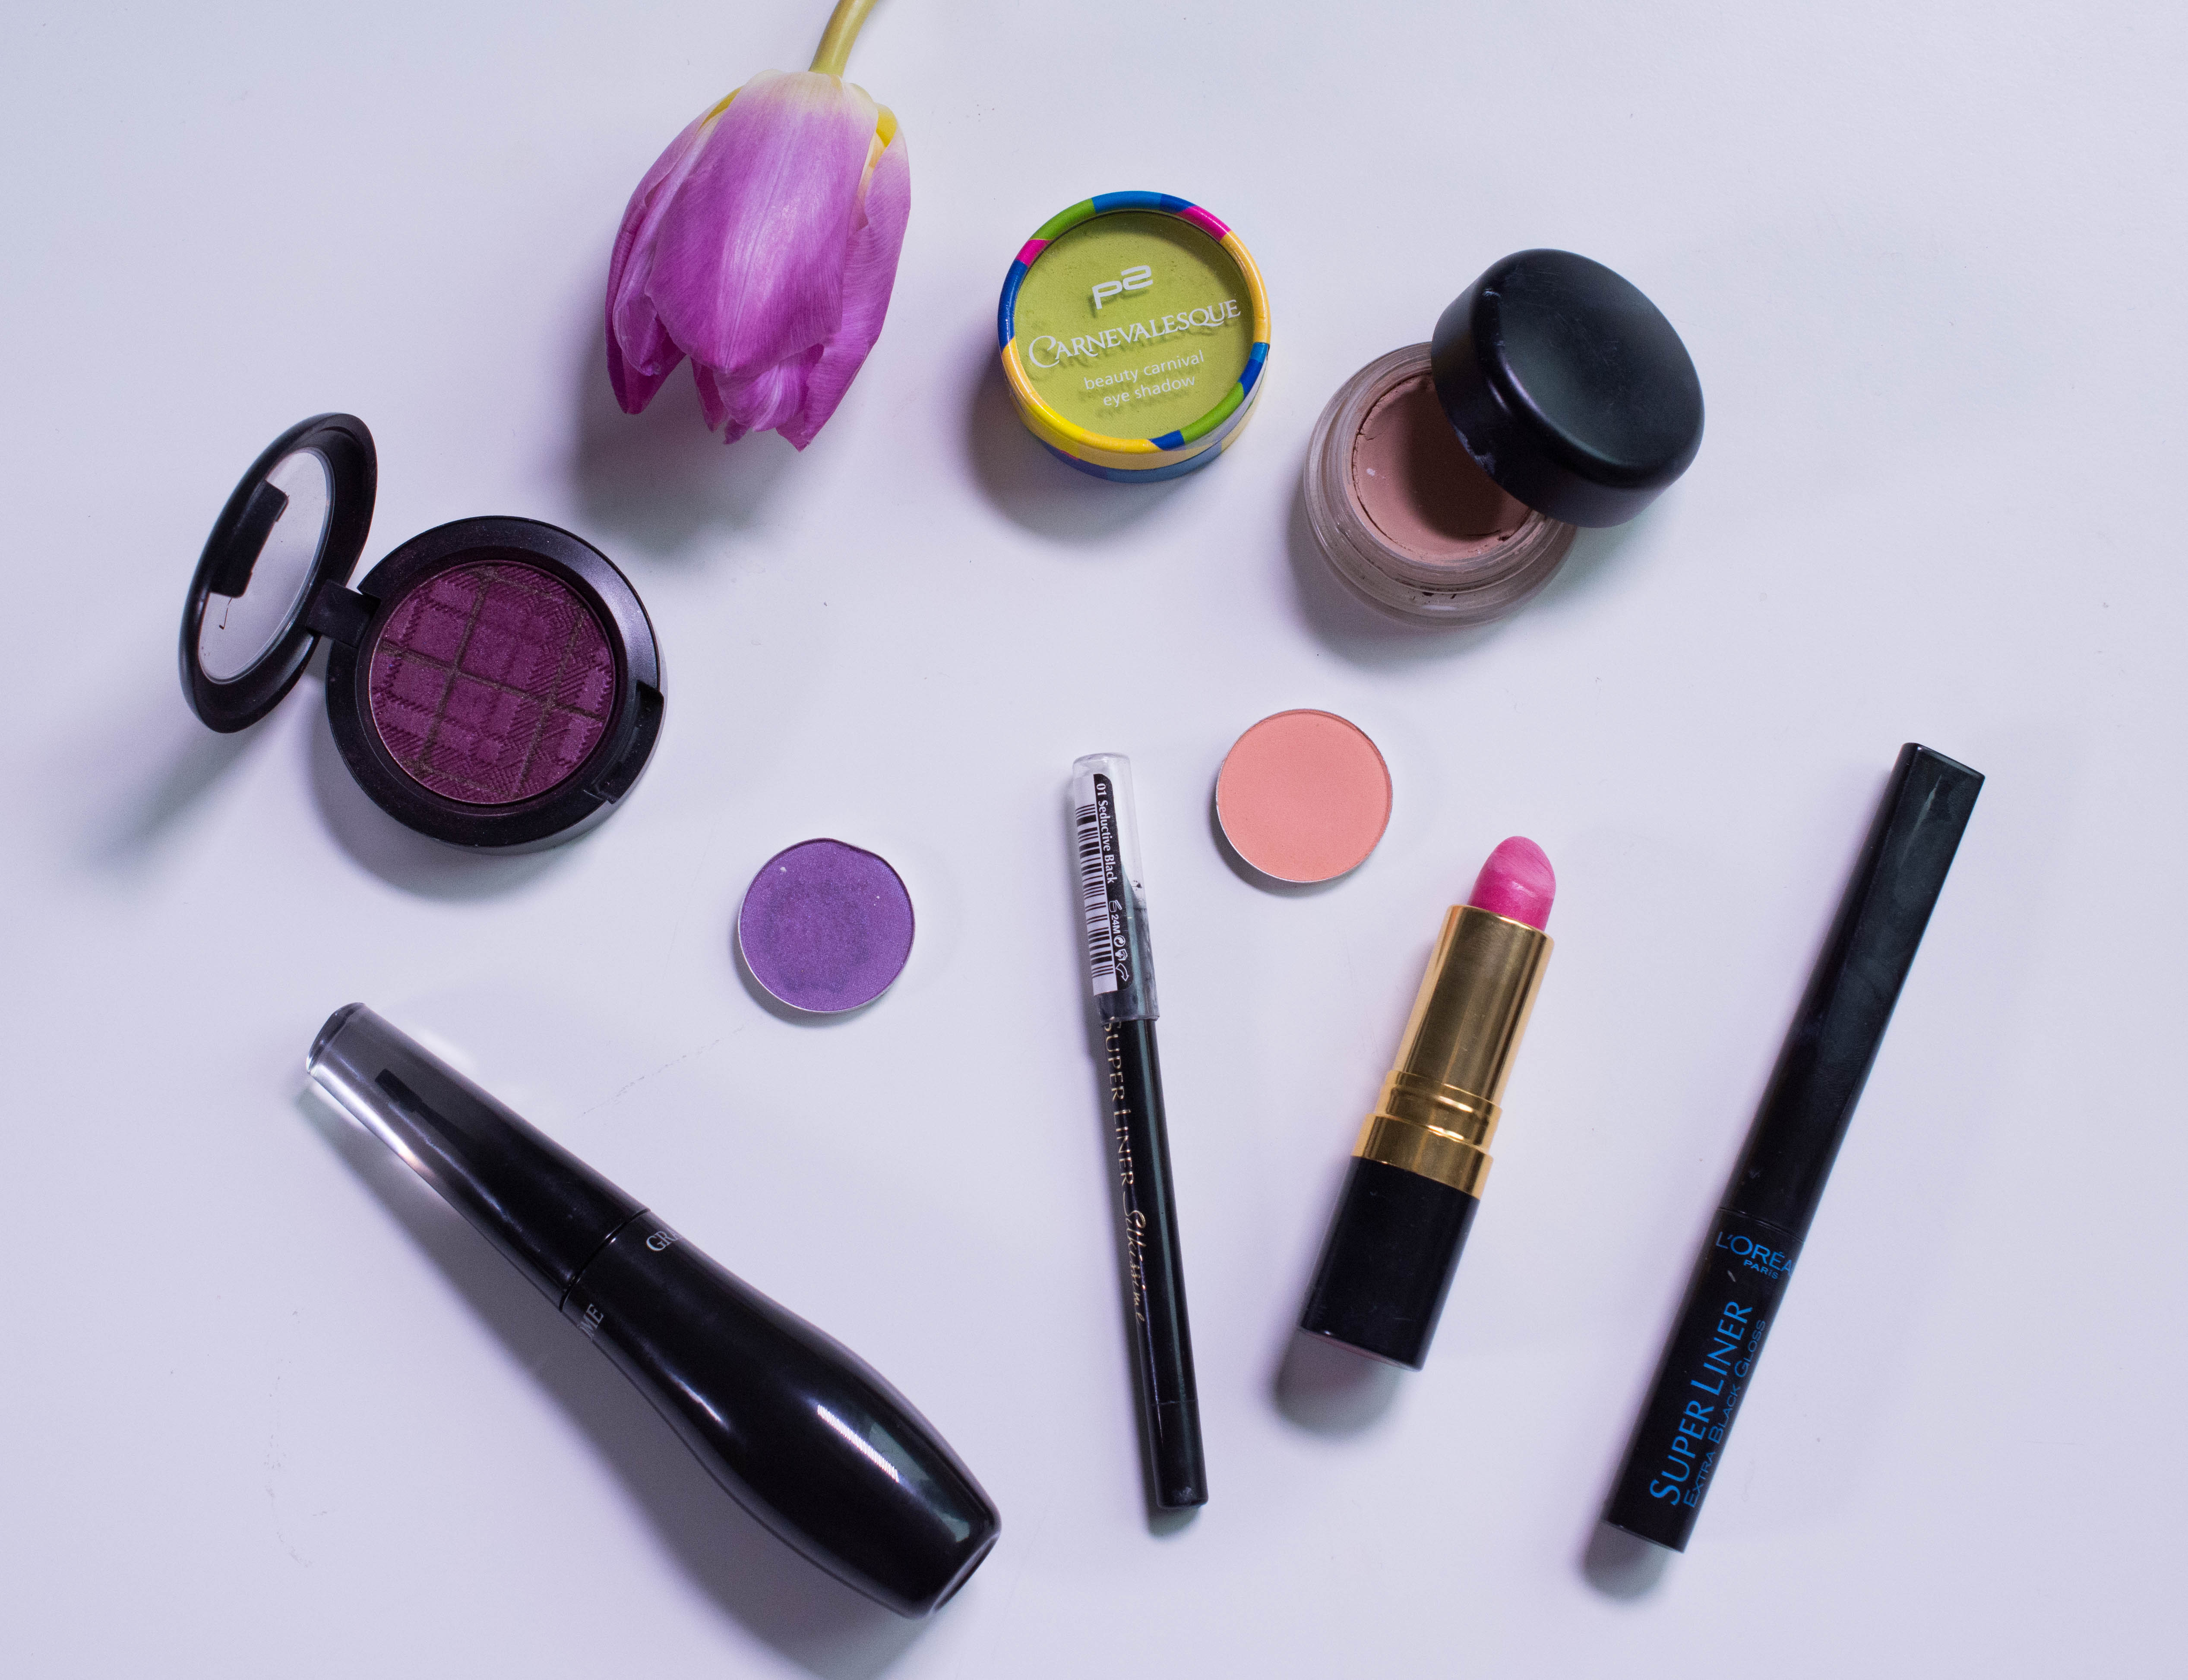 Products used on my eyes and lips